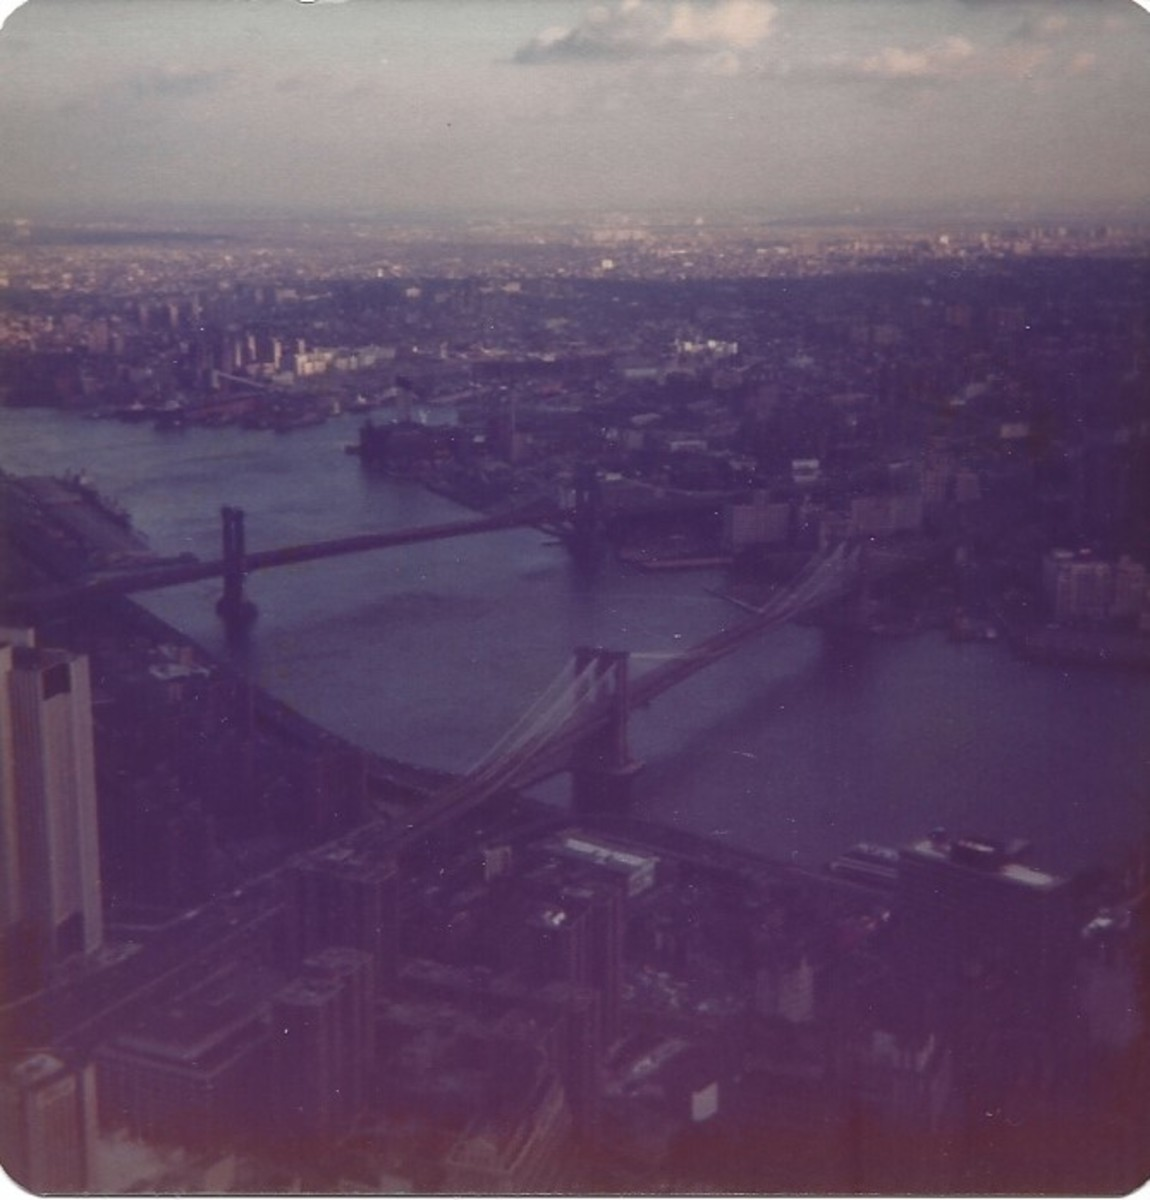 View of the Brooklyn and Manhattan Bridges from the observation deck of the World Trade Center, December 1979.